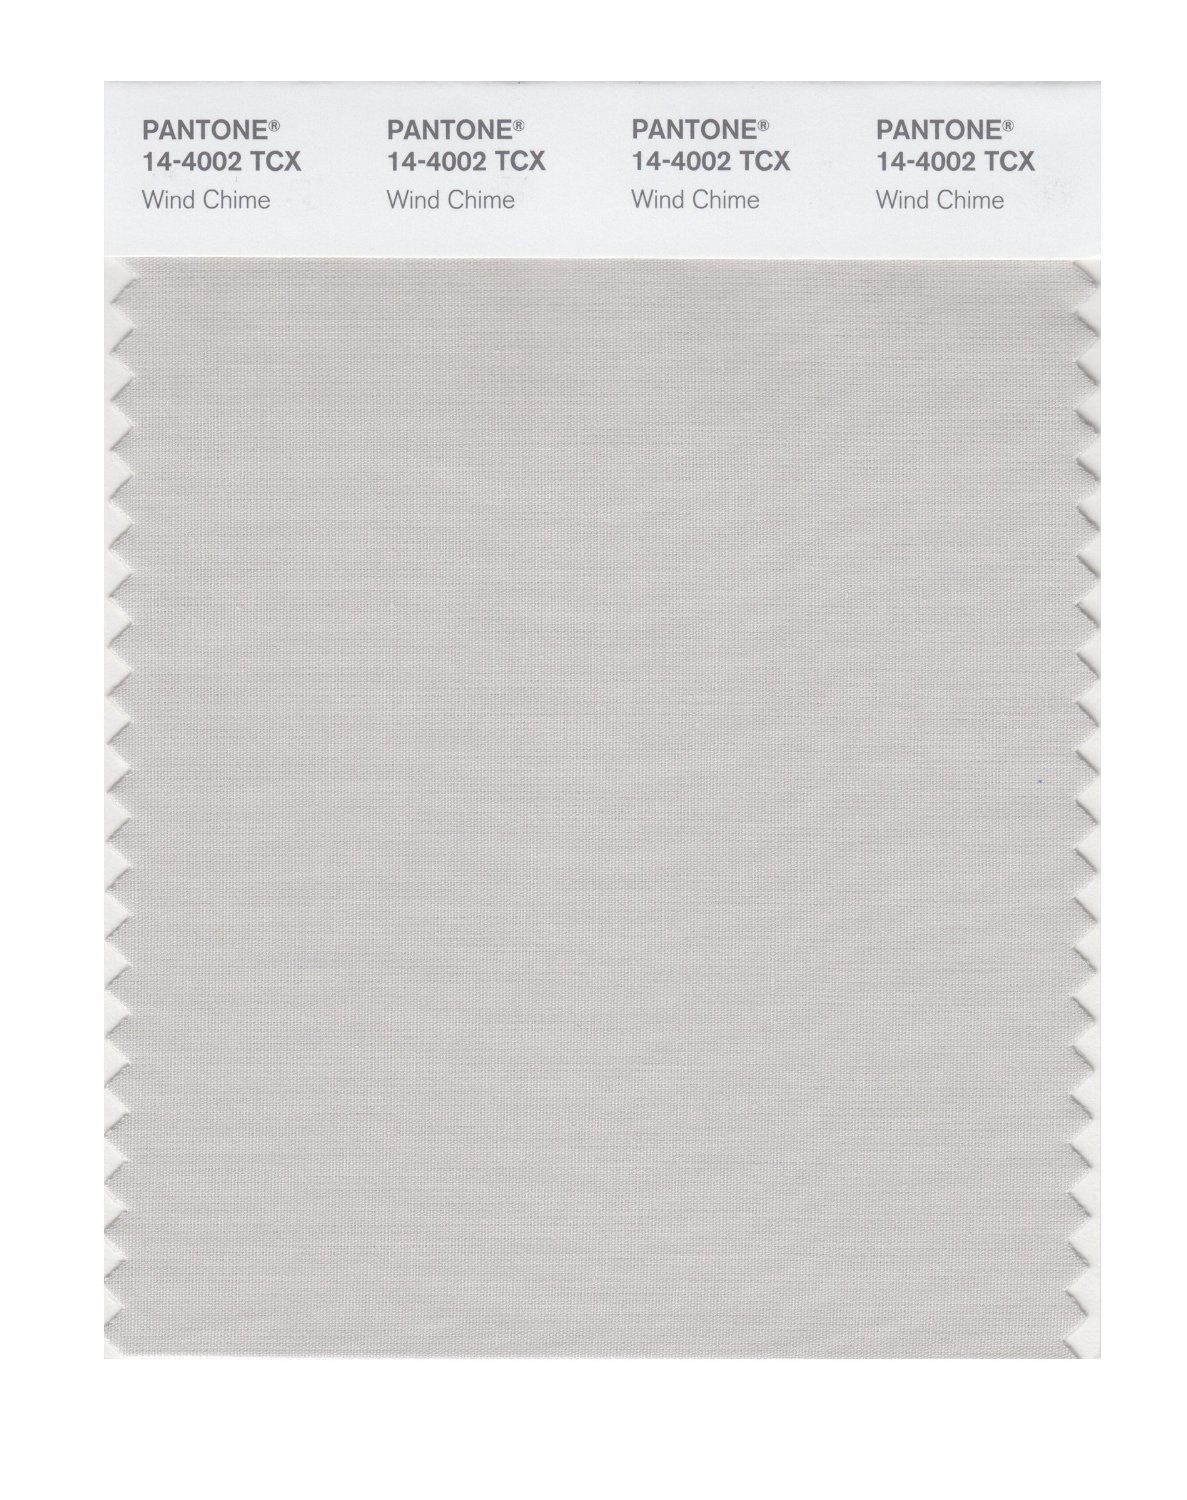 Pantone Smart Swatch 14-4002 Wind Chime